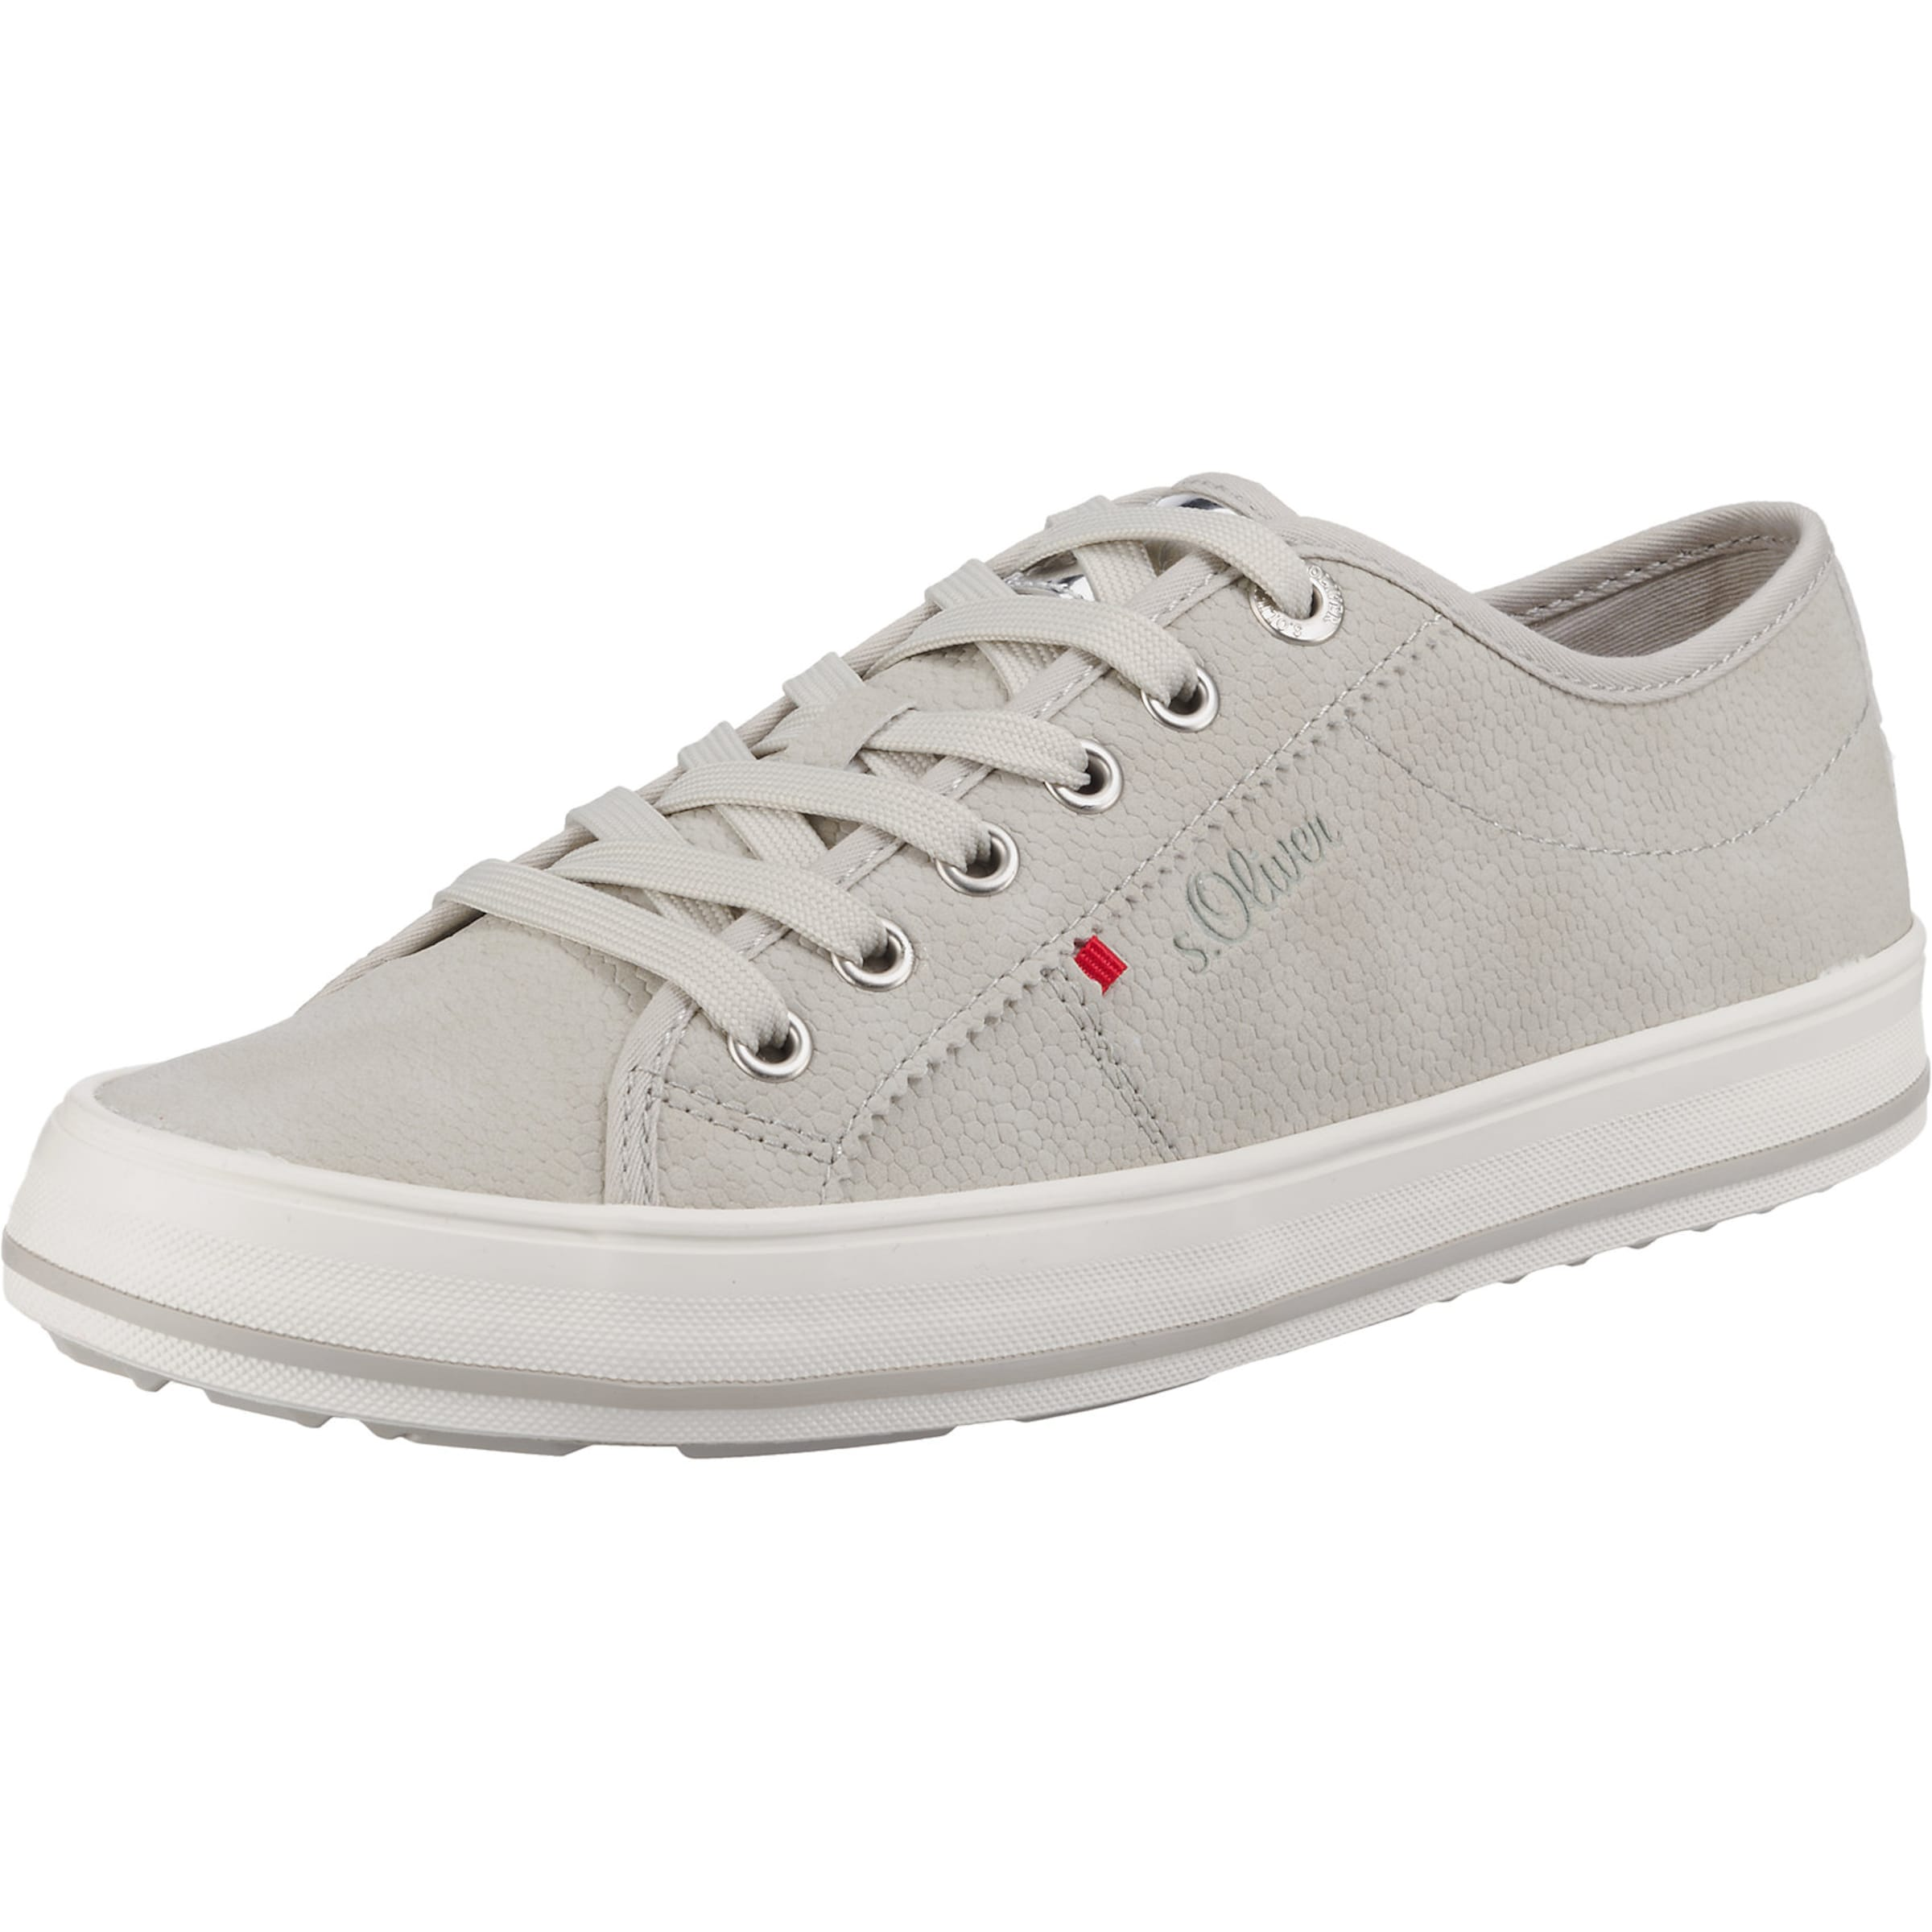 Sneakers Grau S S oliver In 7IYbyfgv6